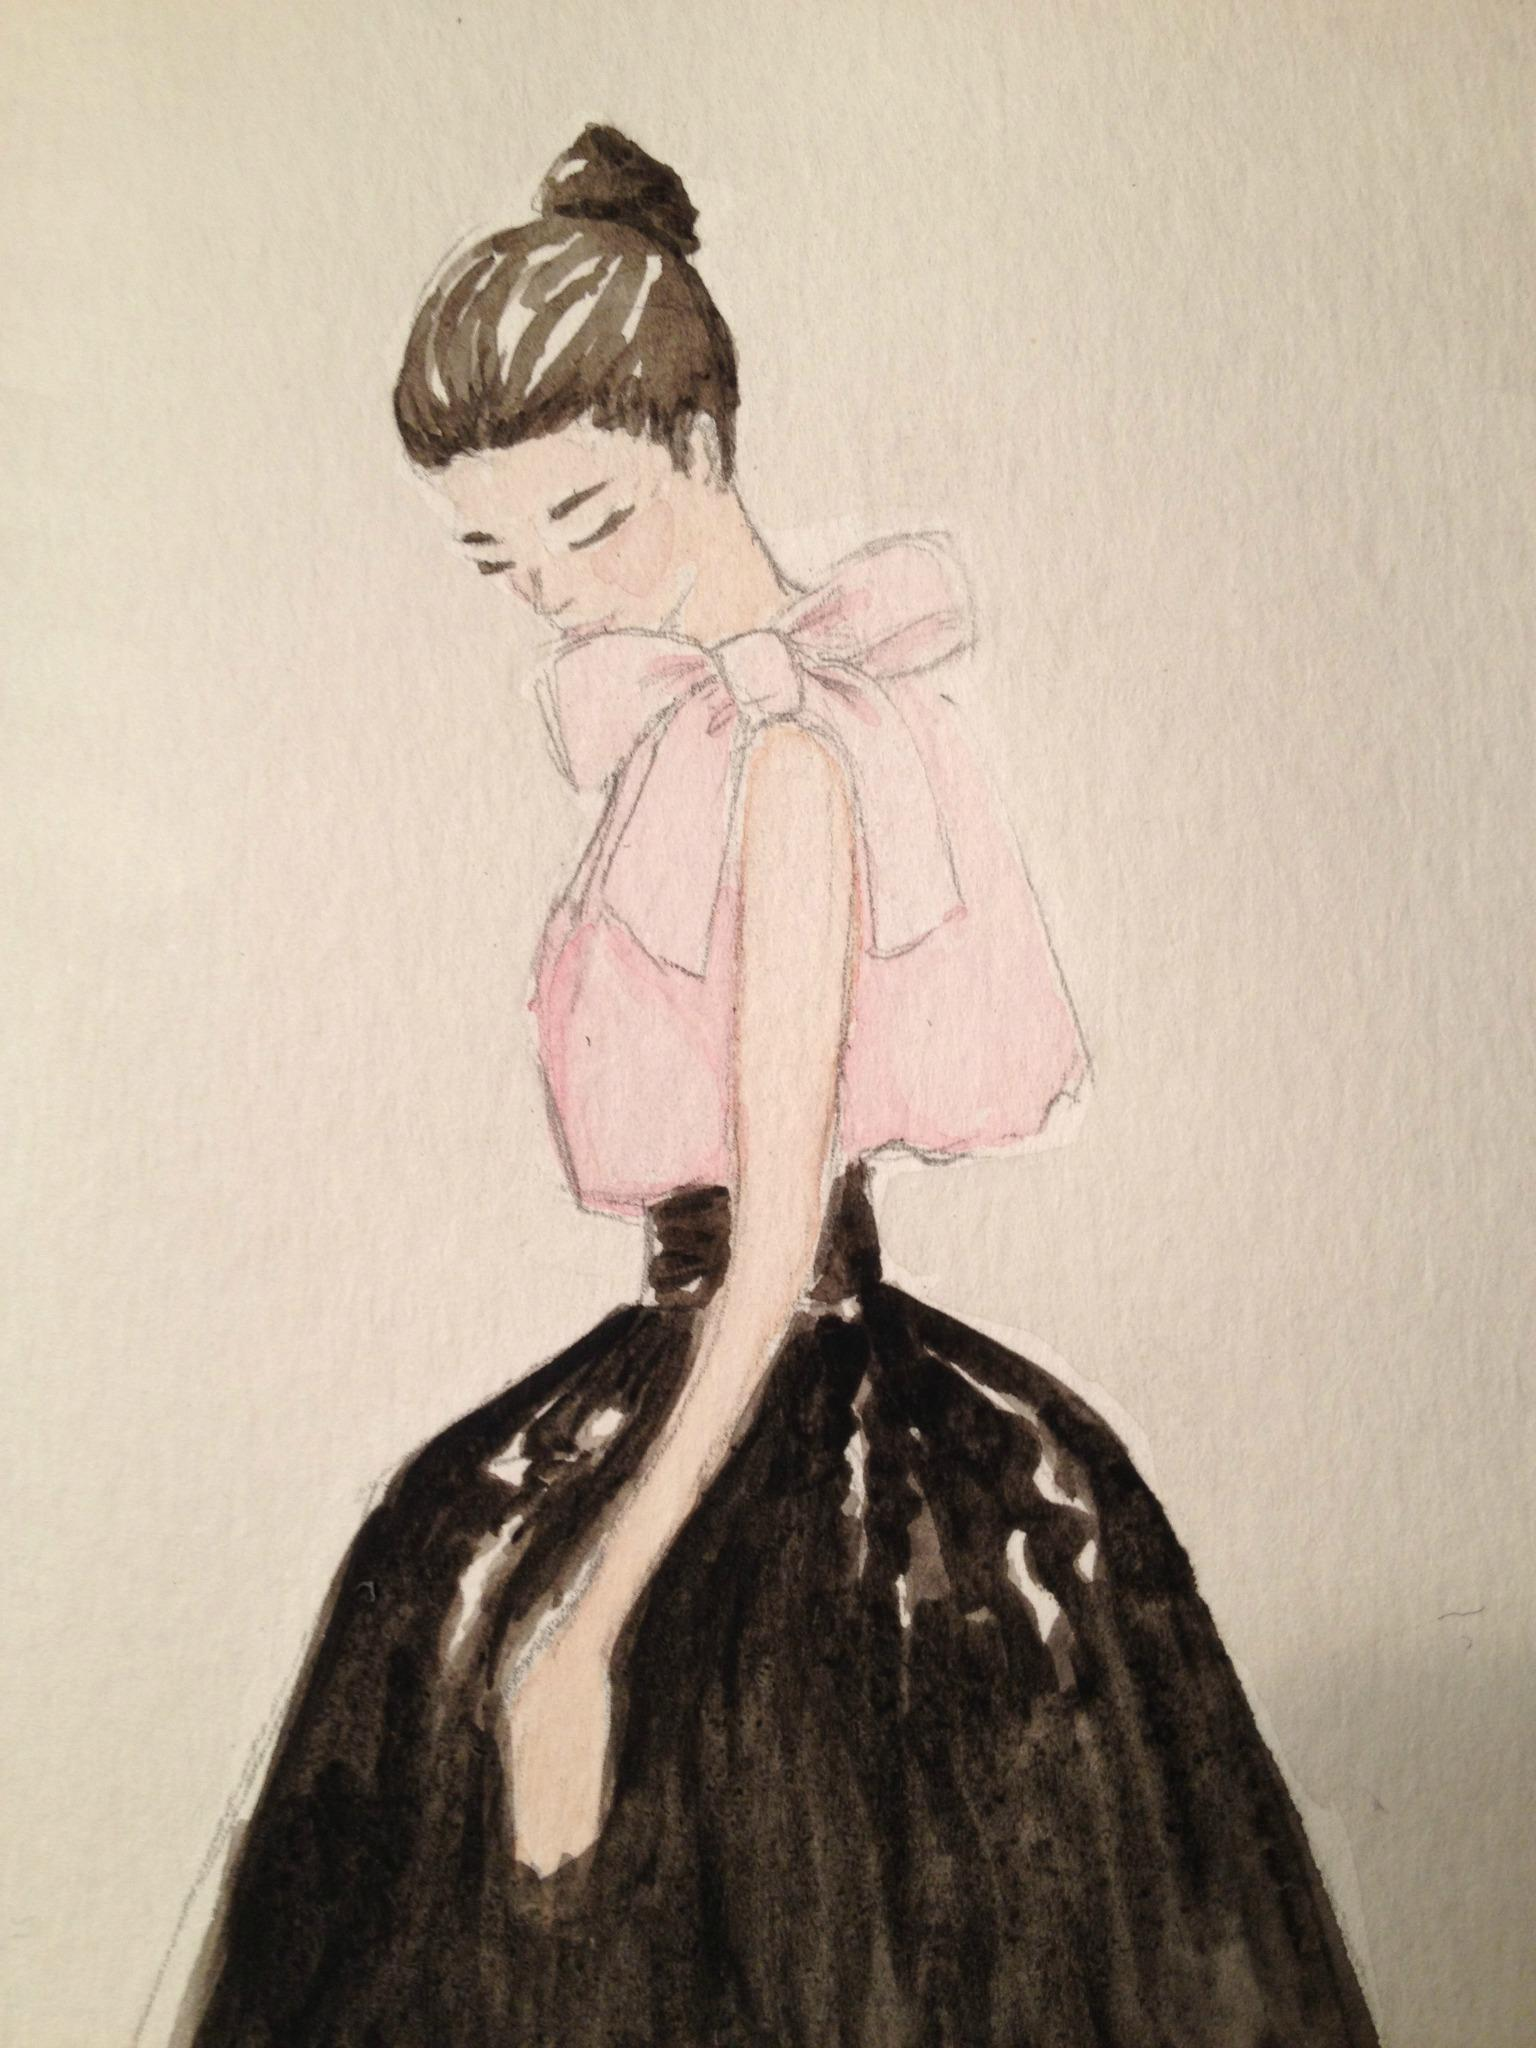 Final embellished watercolors: Silk and Tulle - image 11 - student project